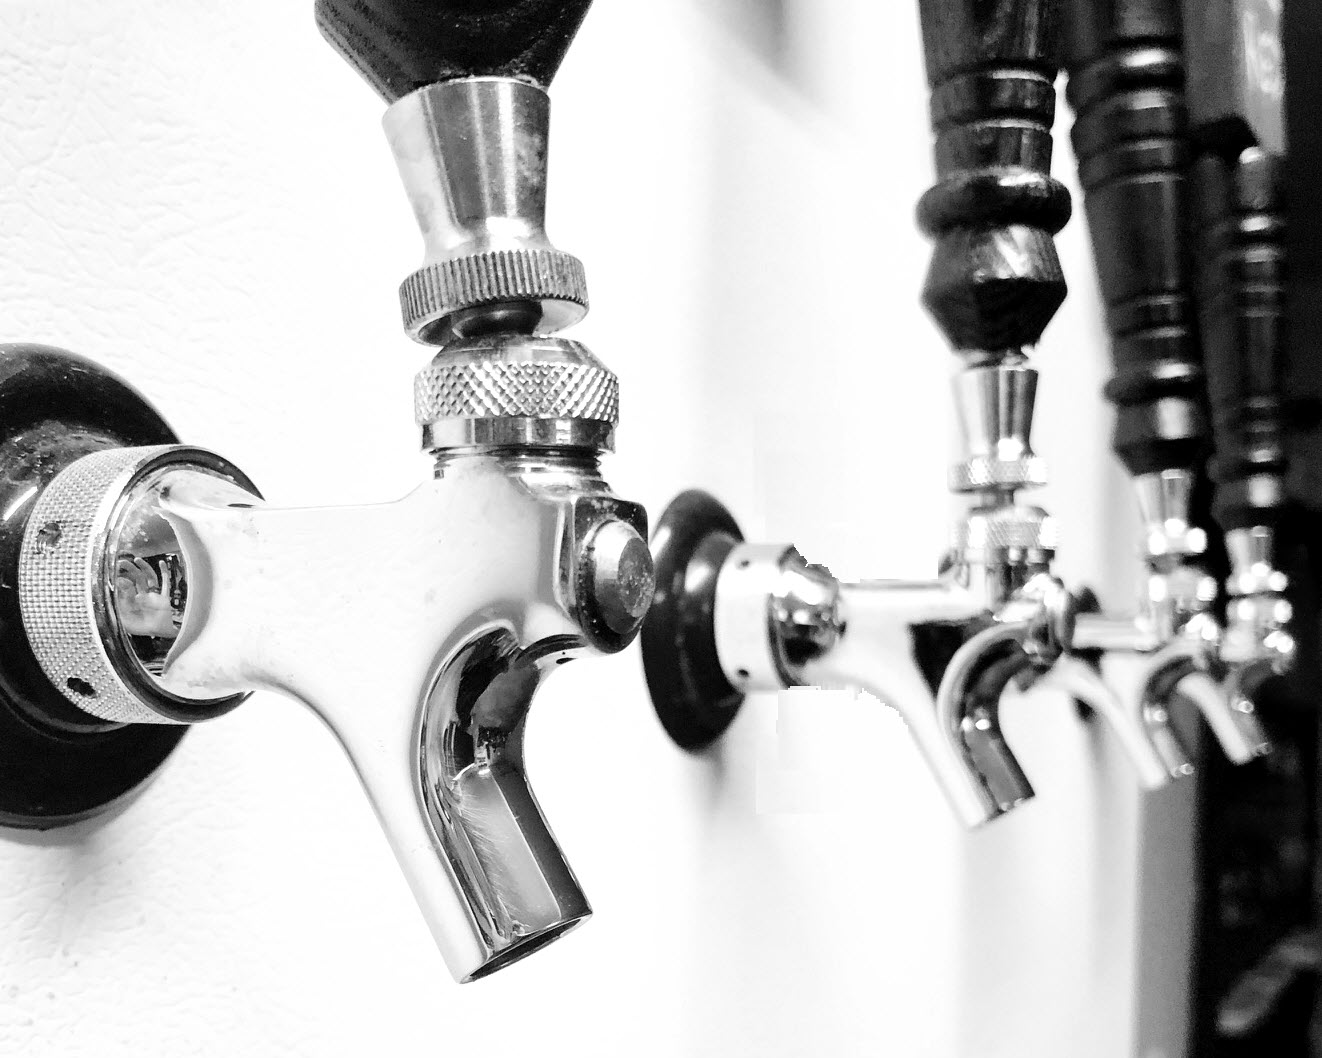 On Tap - A list of what we're pouring right now and where you can find it